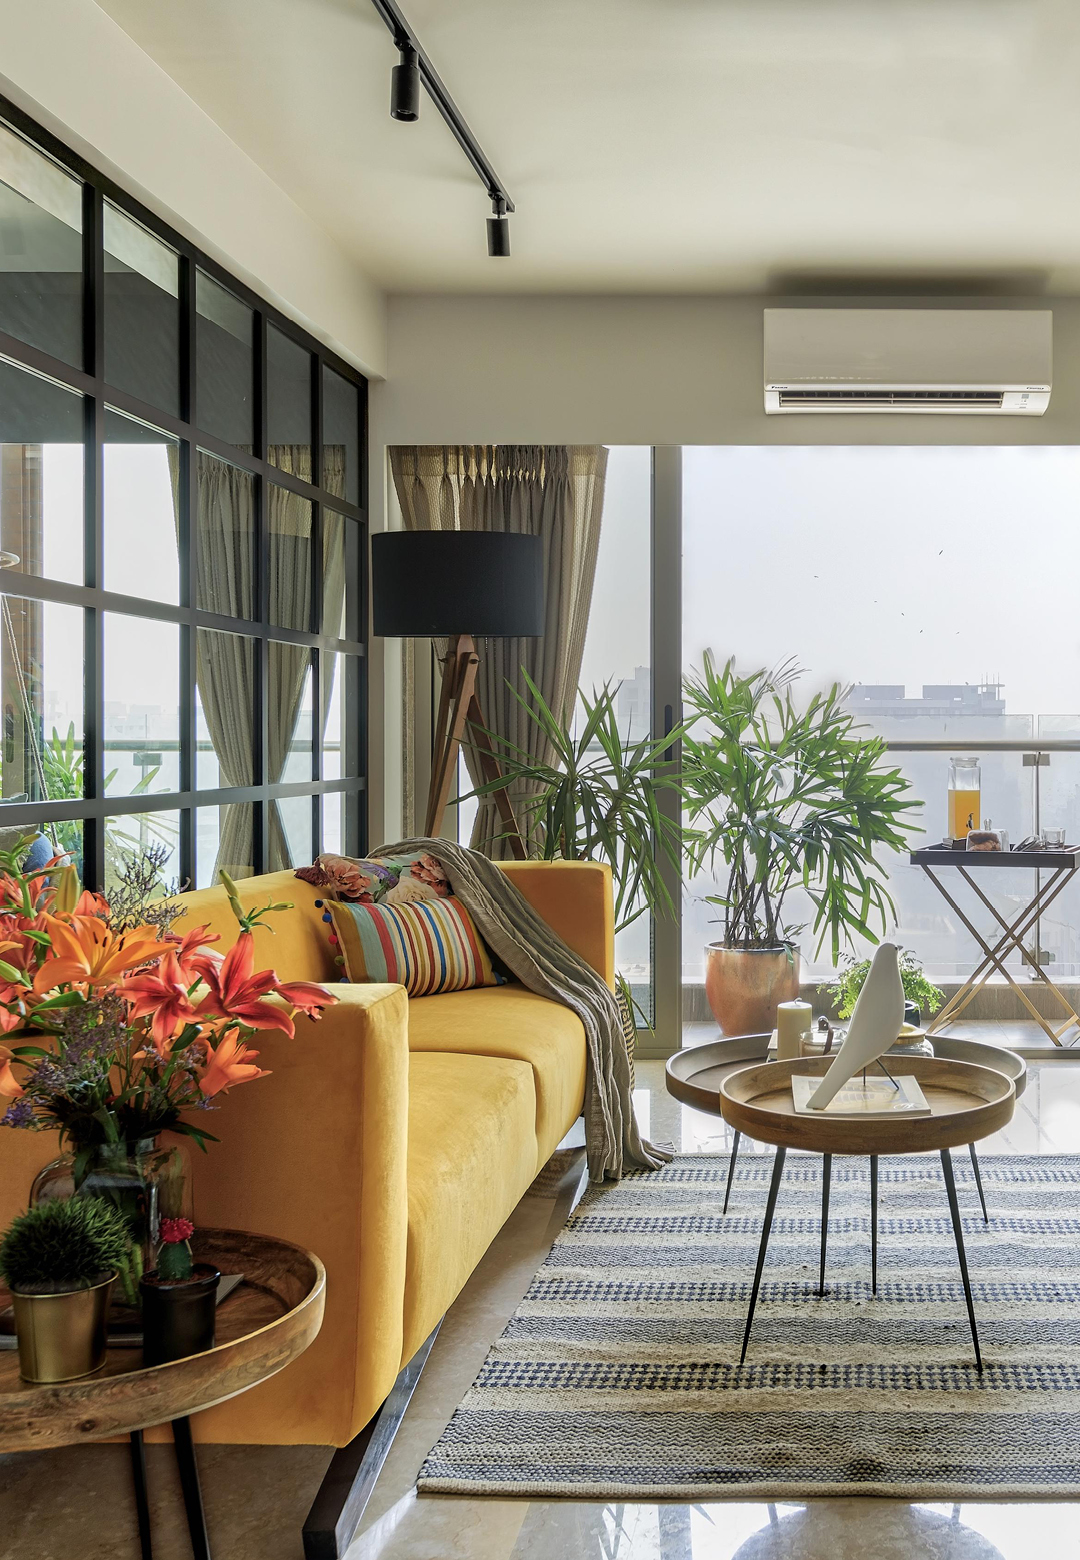 The overall styling of the home has been kept light and easy to make space for the family to add their own personal touches| Anu Chauhan, Prashant Chauhan| Zero9| STIR